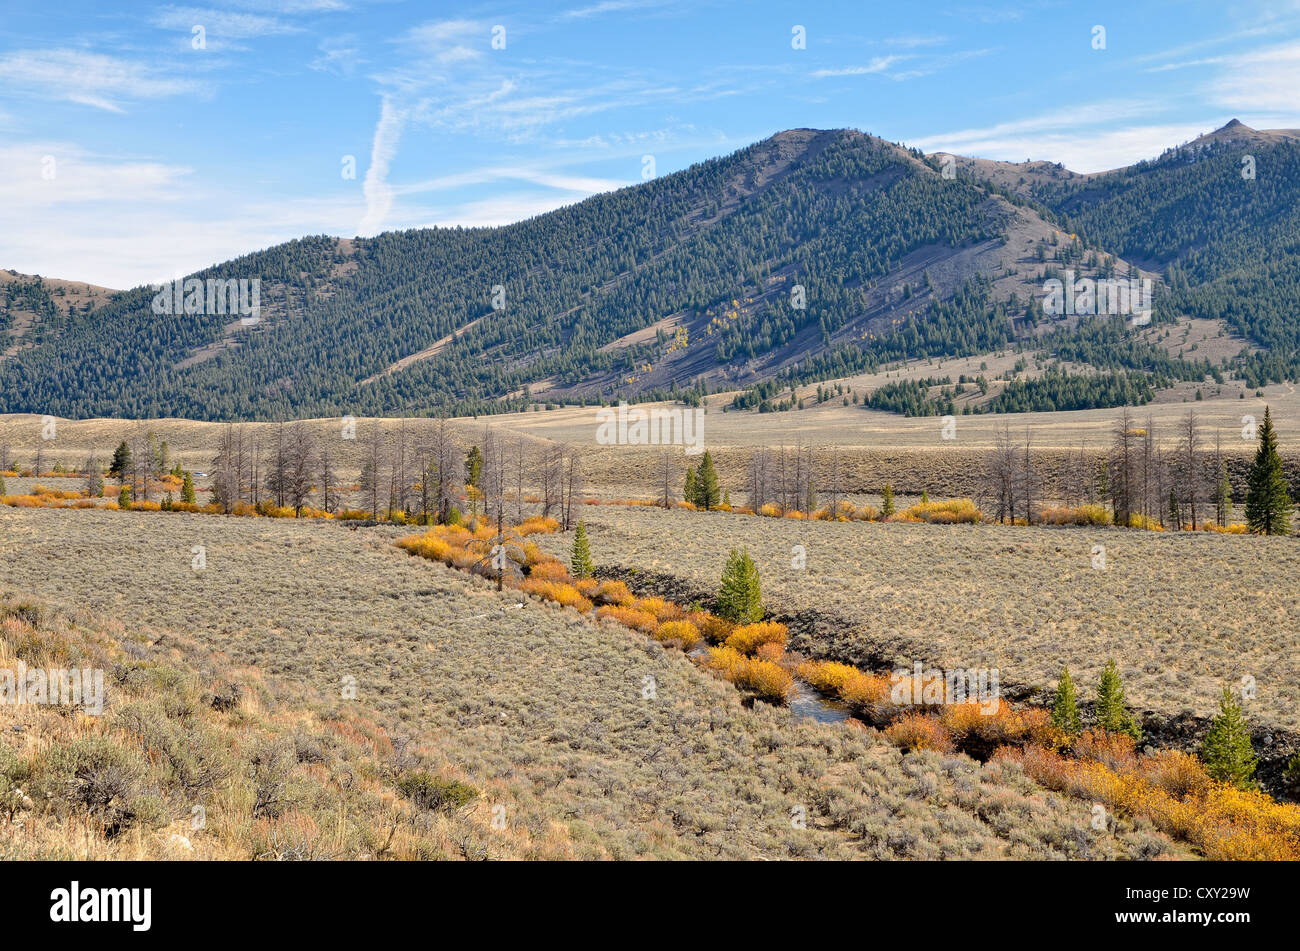 Großen Lost River Valley, Idaho, USA Stockbild